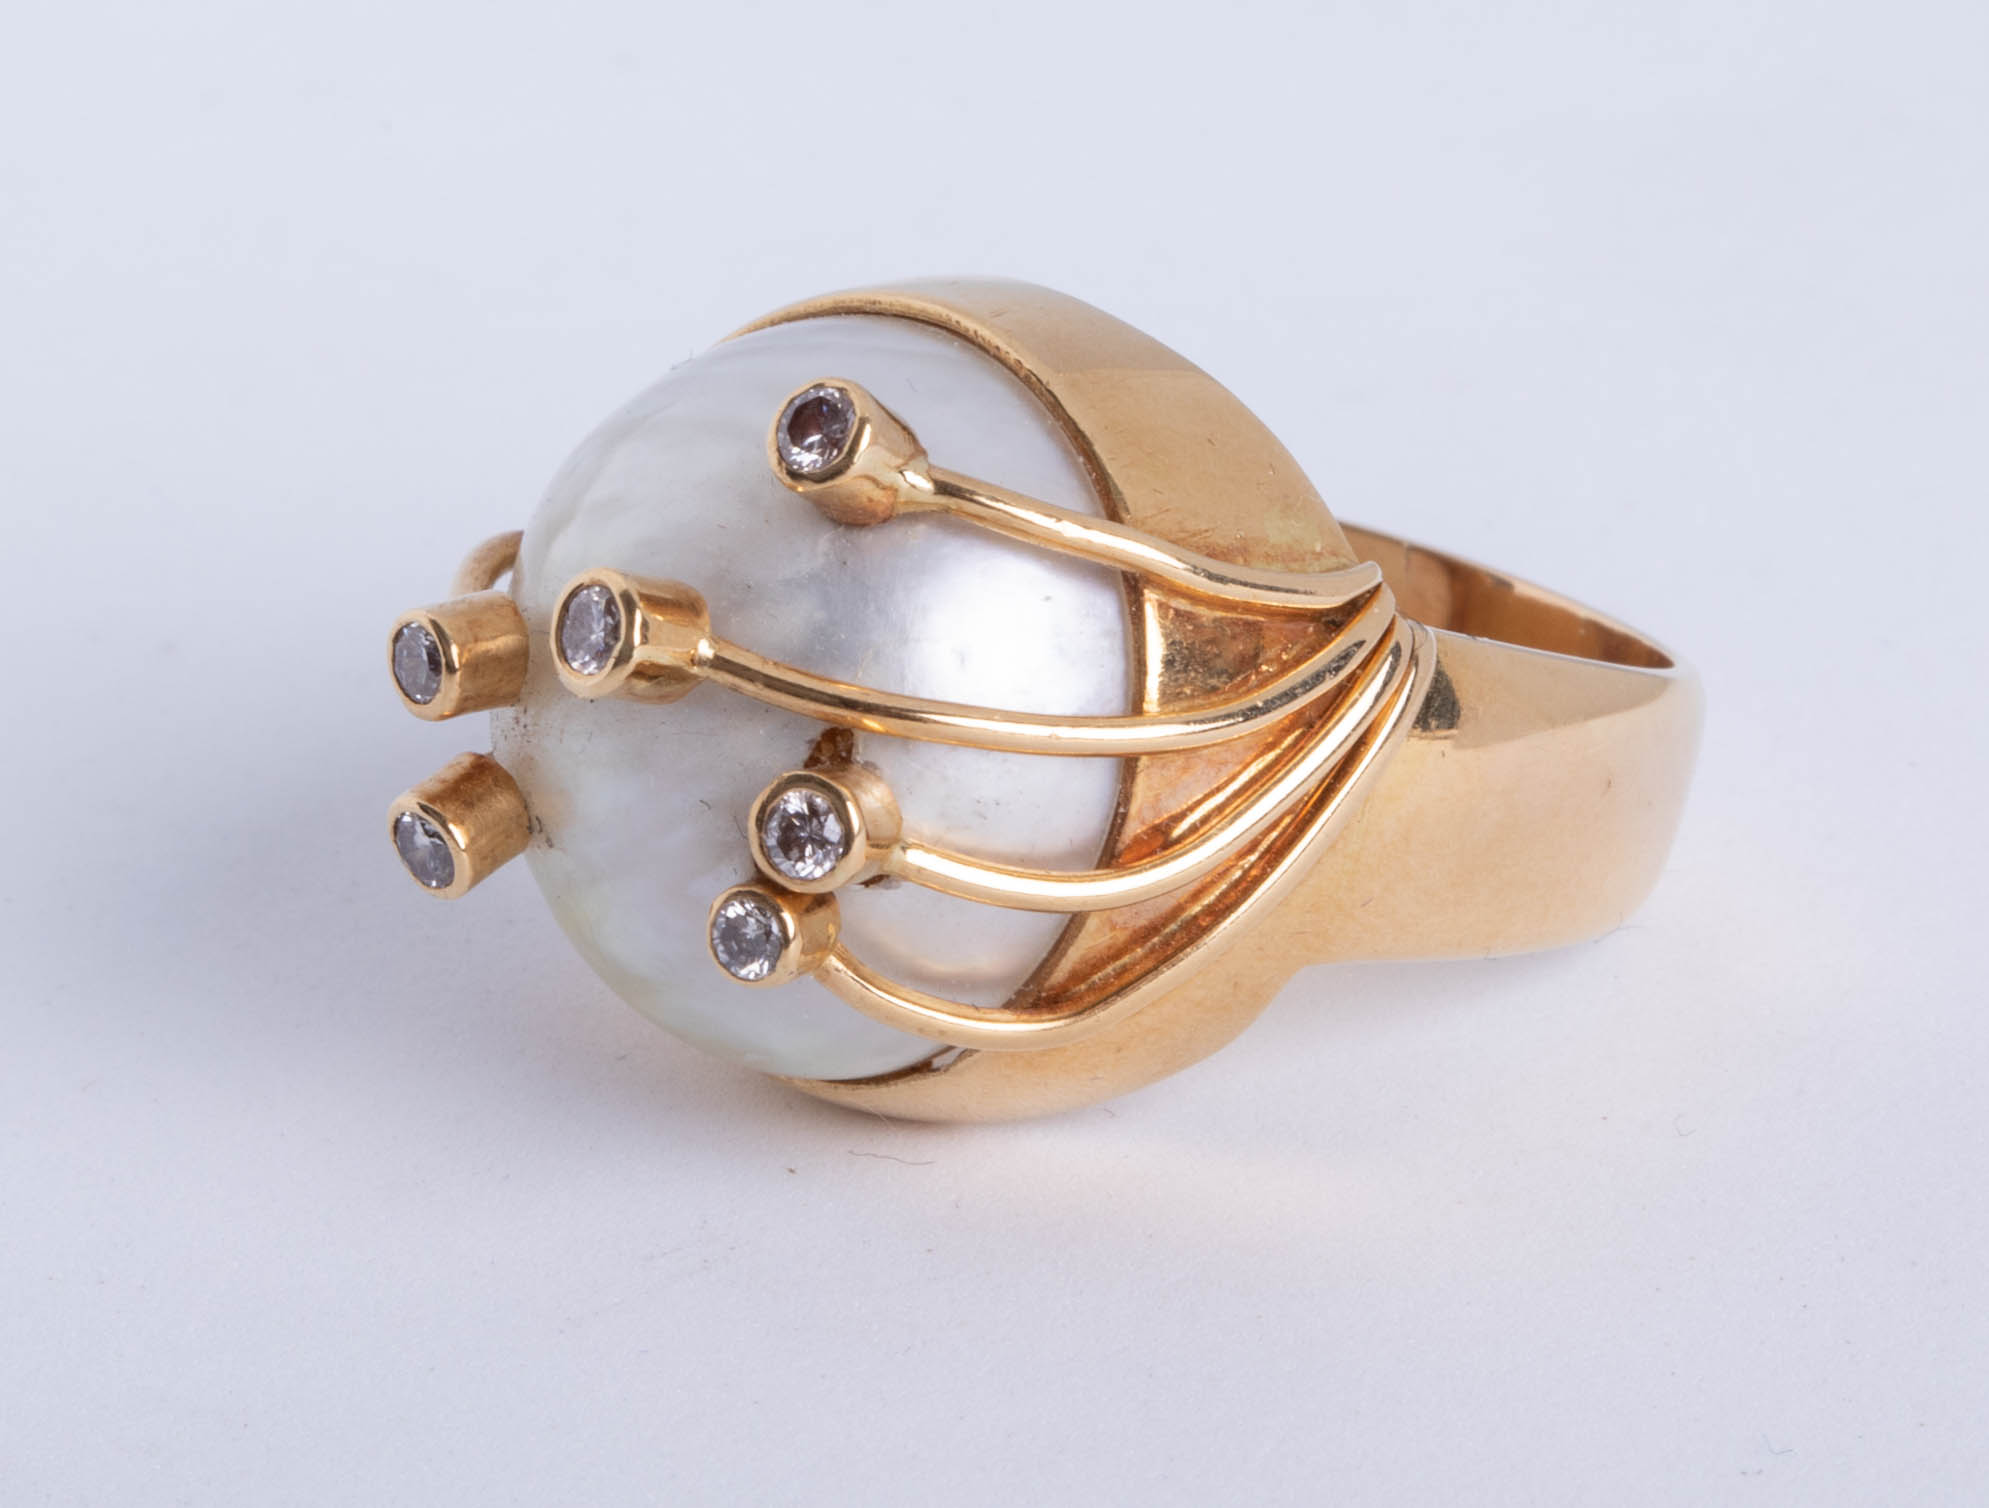 Lot 026 - An impressive Mabe pearl ring set with diamonds in yellow gold, size U.